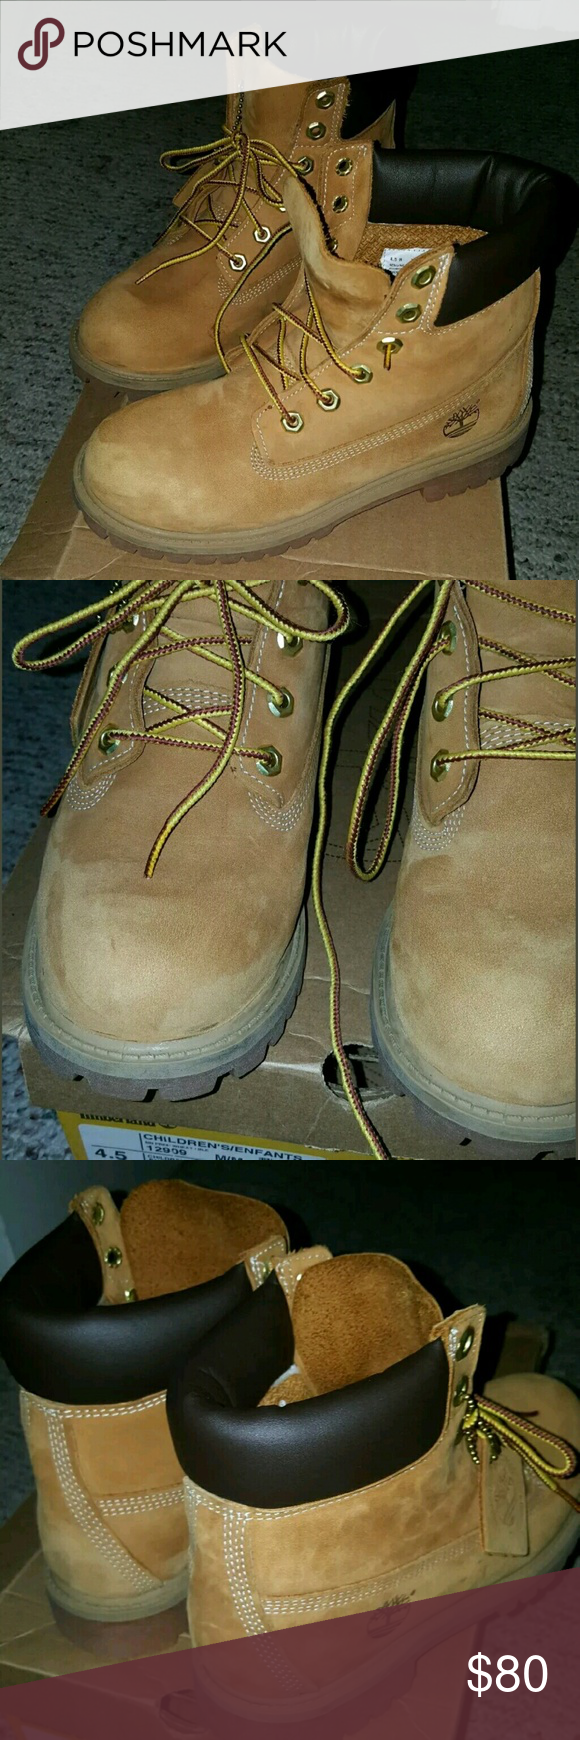 Timberland boots Great condition Timberland Shoes Boots